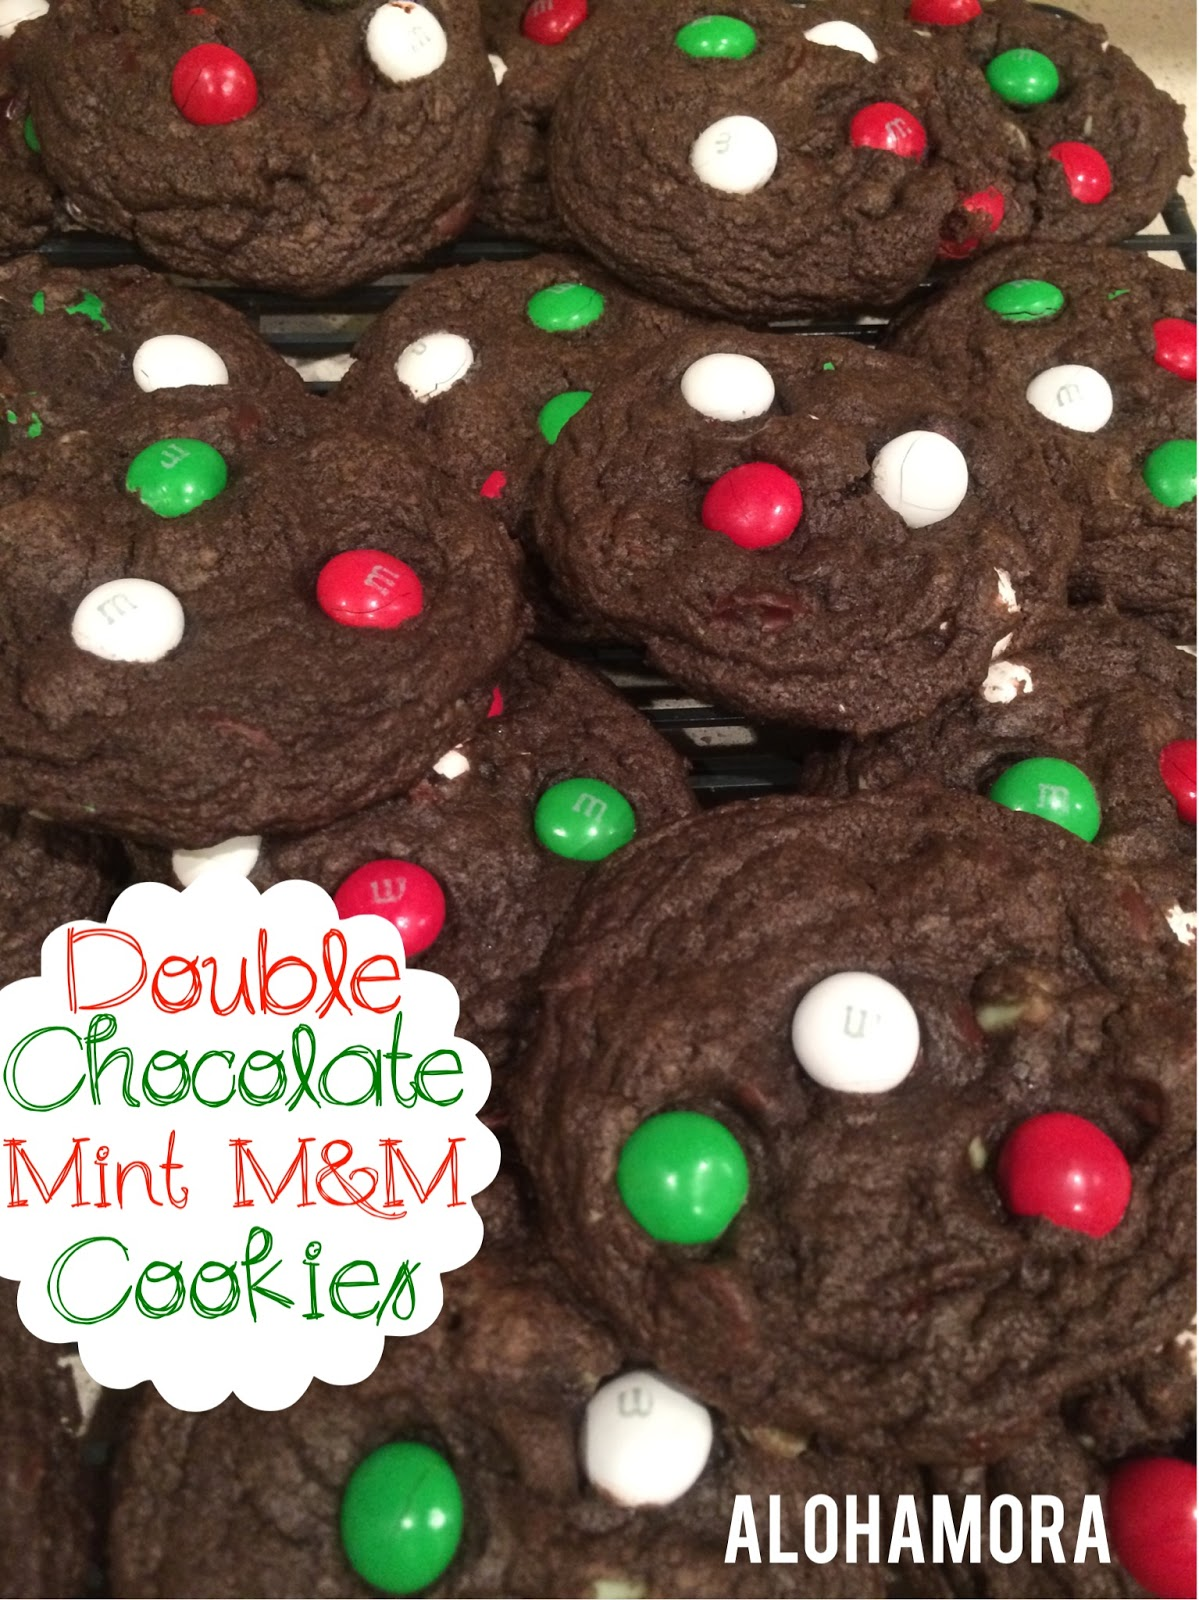 Double Chocolate and Double Mint Cookies with Mint M&M candies.  Deliciously chocolate cookies that are soft and big and absolutely delicious!  Perfect cookie for a chocolate/mint lover.  Use the Christmas M&Ms for a festive Holiday cookie perfect for a cookie exchange or neighbor gifts.  Alohamora Open a Book http://alohamoraopenabook.blogspot.com/